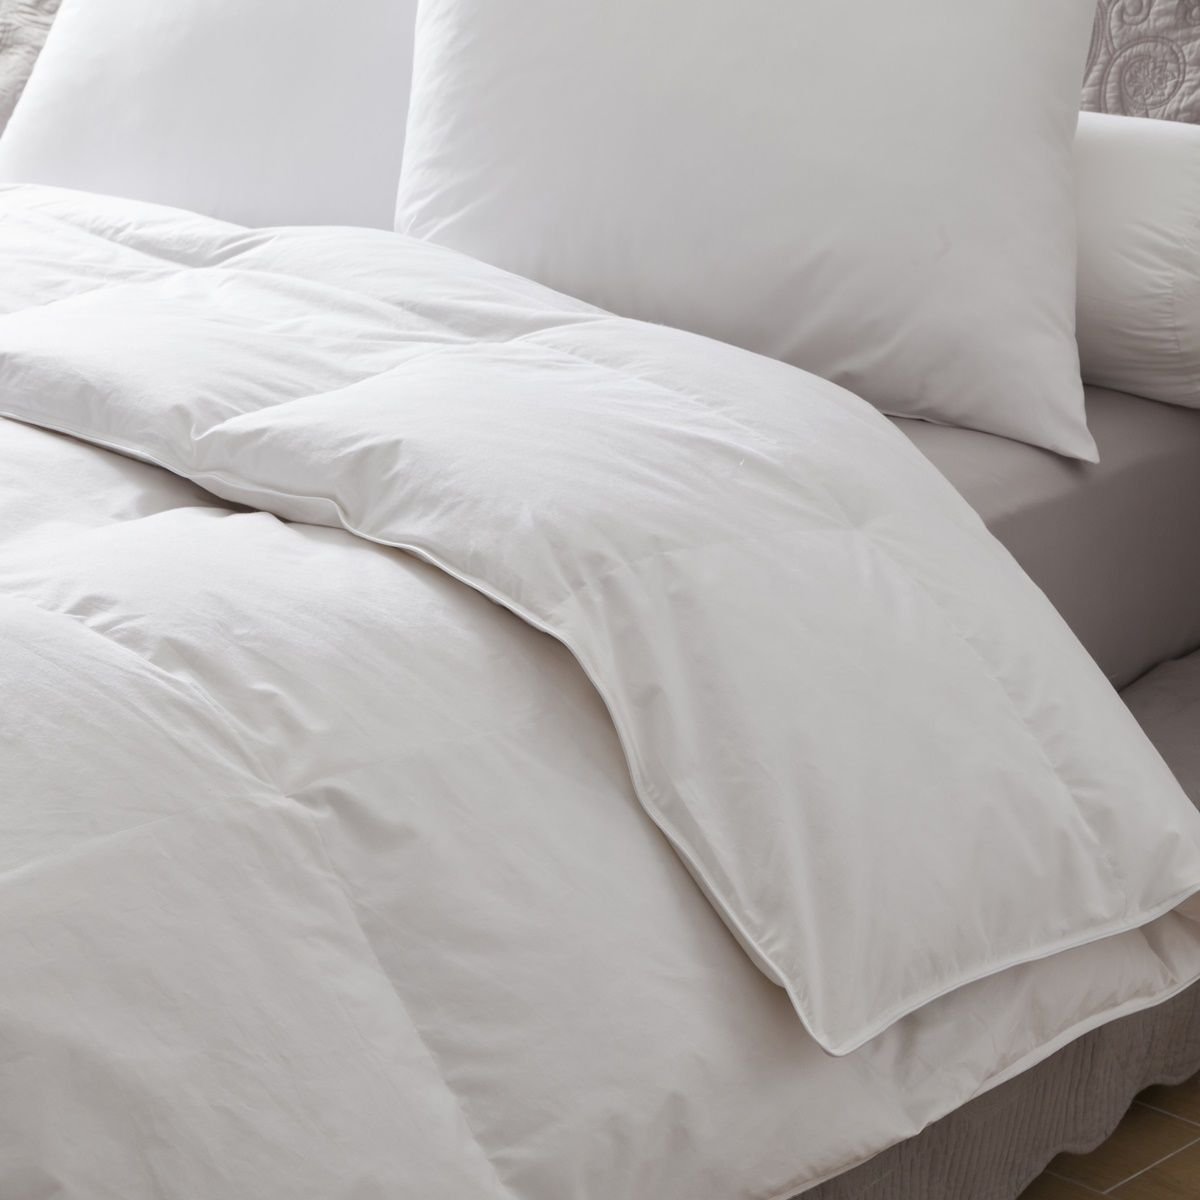 Duvet 90% goose down 300g / m² | Bed linen | Tradition des Vosges